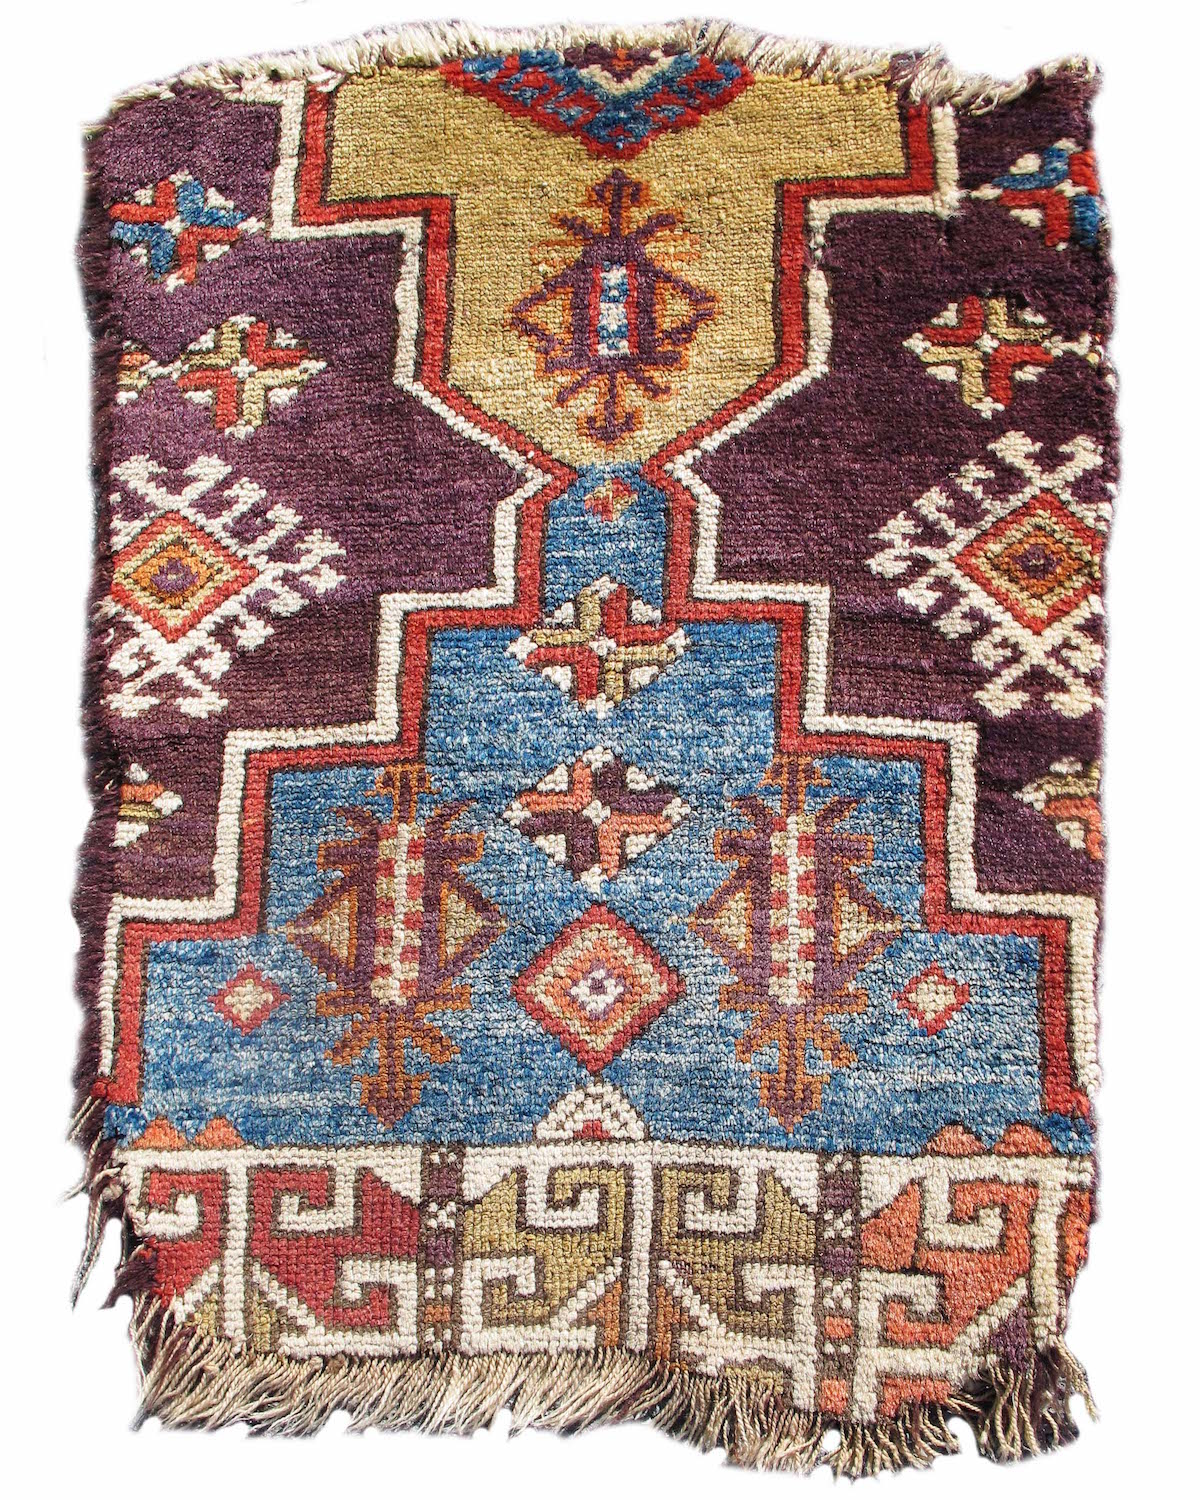 Central Anatolian rug fragment